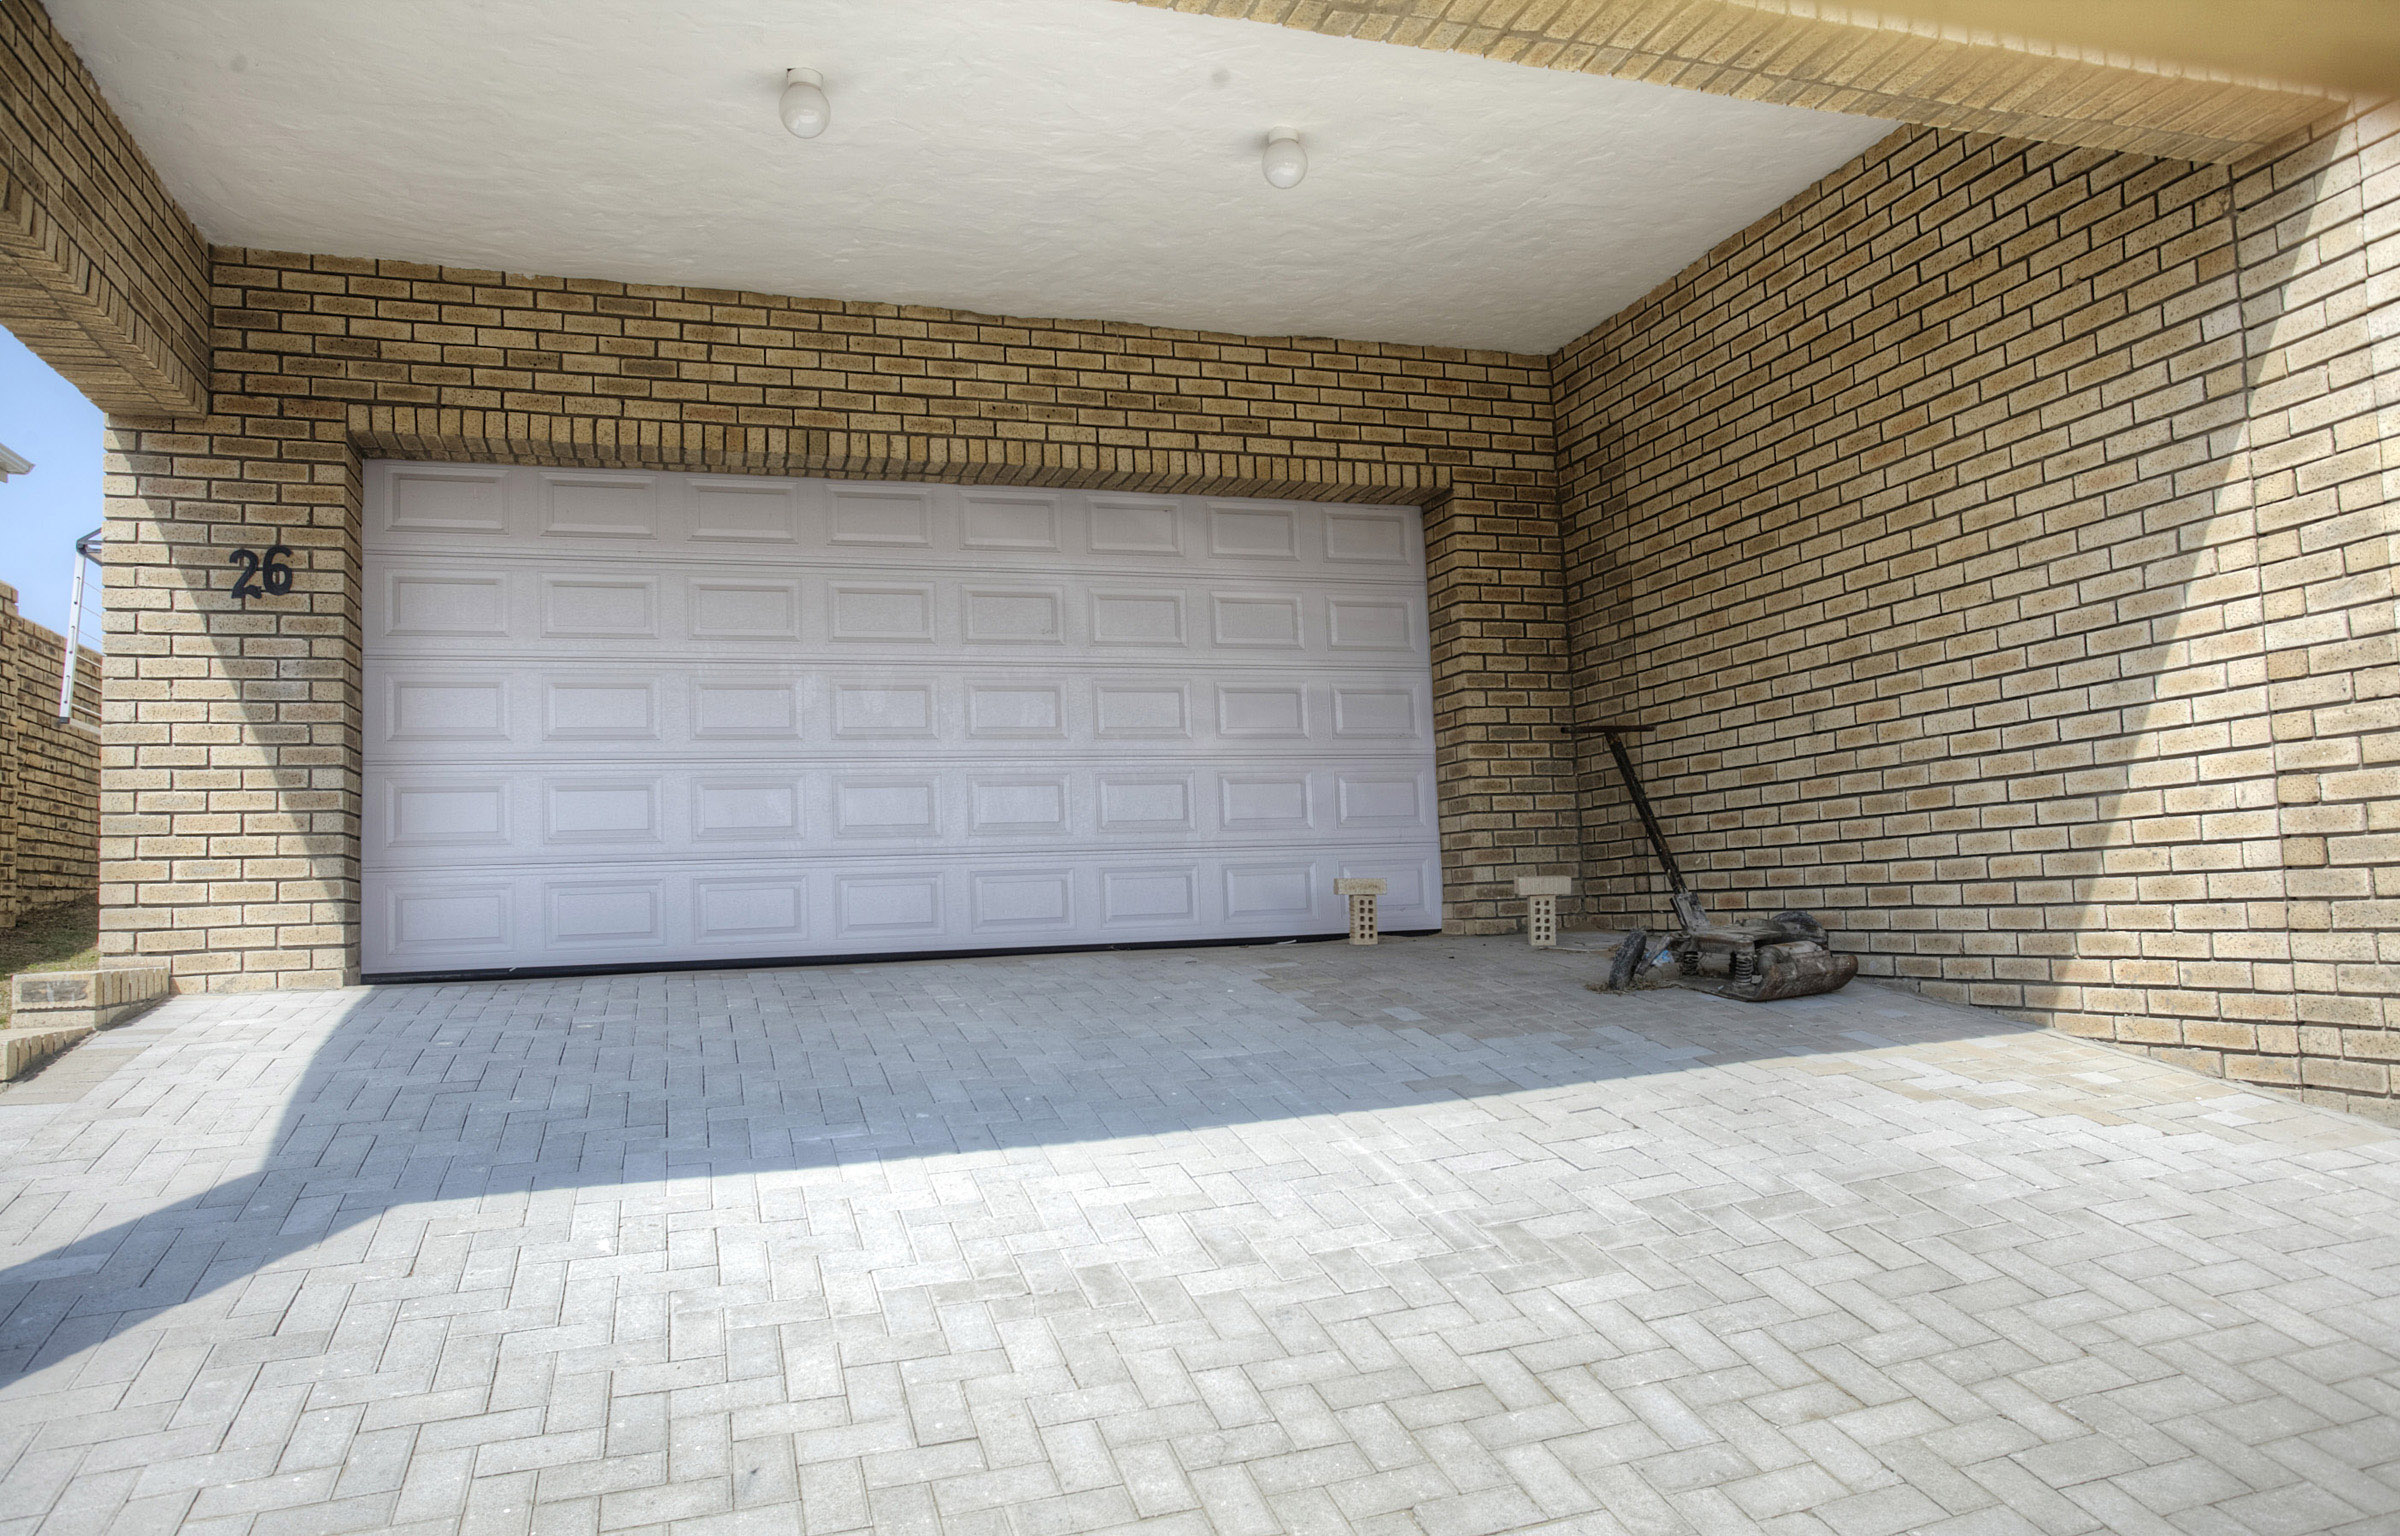 4 Bedroom House for sale in Lorraine ENT0068019 : photo#2